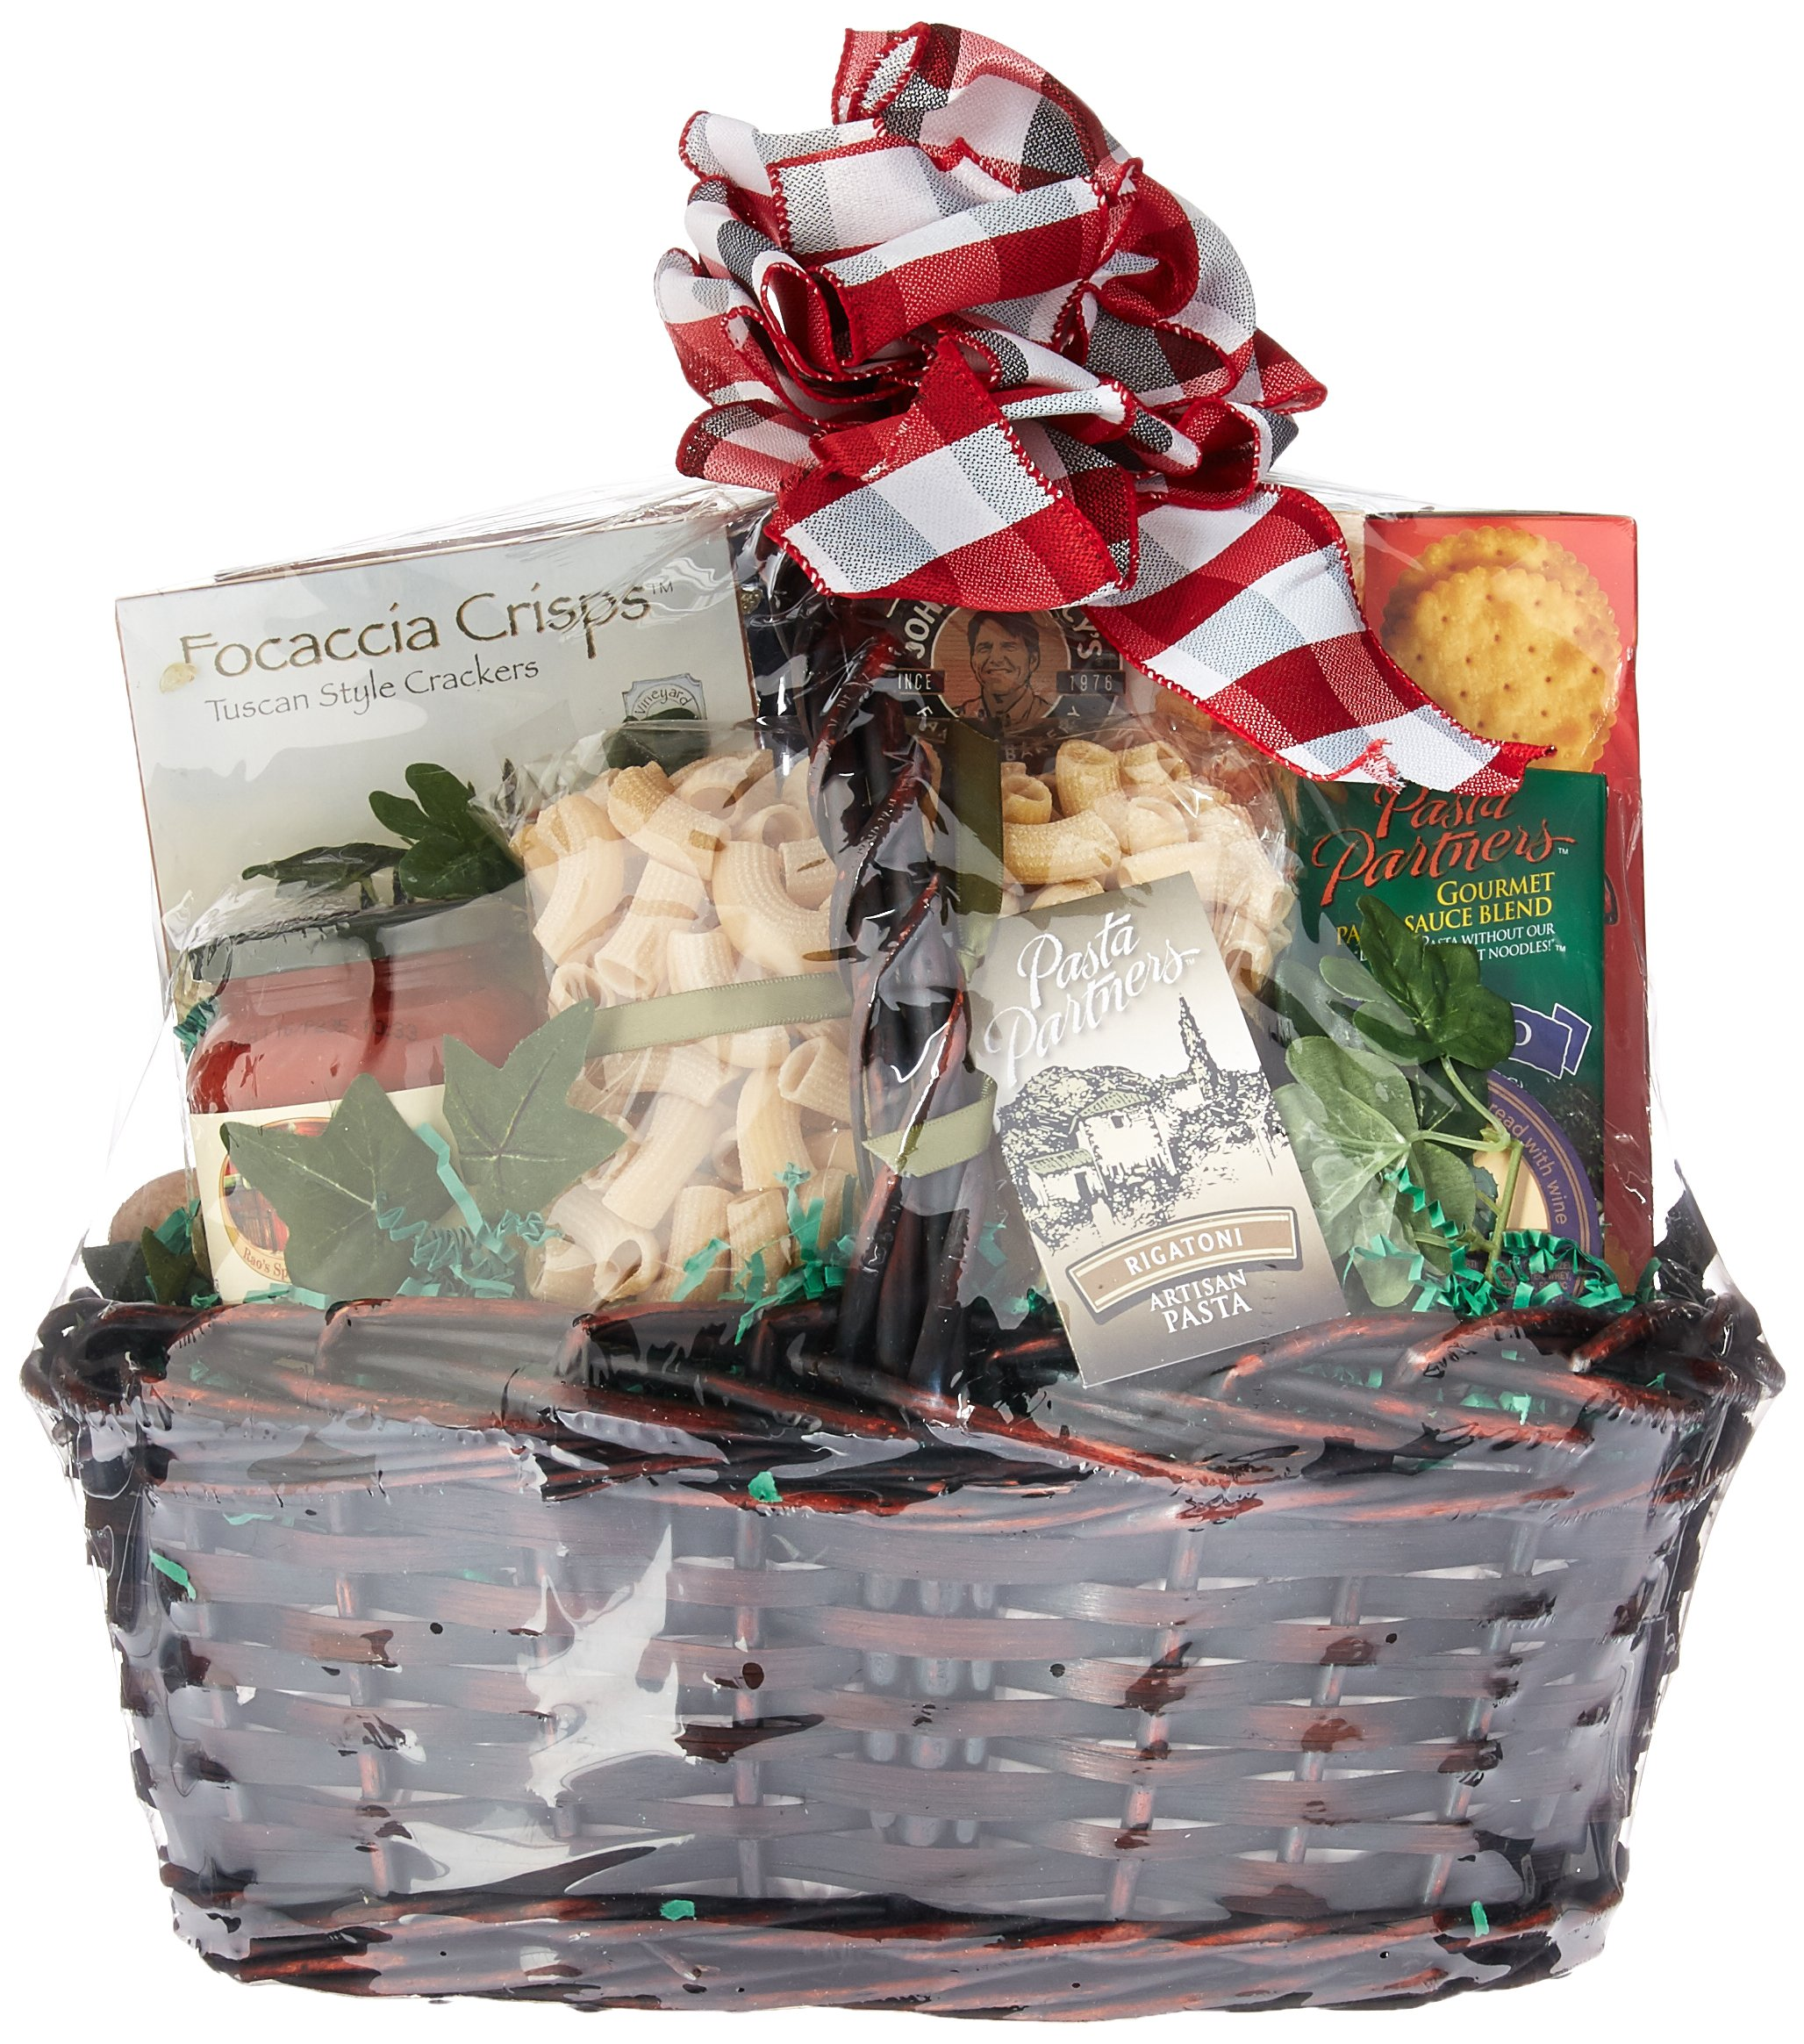 Viva Italiano: Large Italian Gift Basket With Artisan Pastas, A Variety of Sauce Mixes, Wafer Cookies and More, All Paired To Make Complete Italian Dinner, 11 Pounds